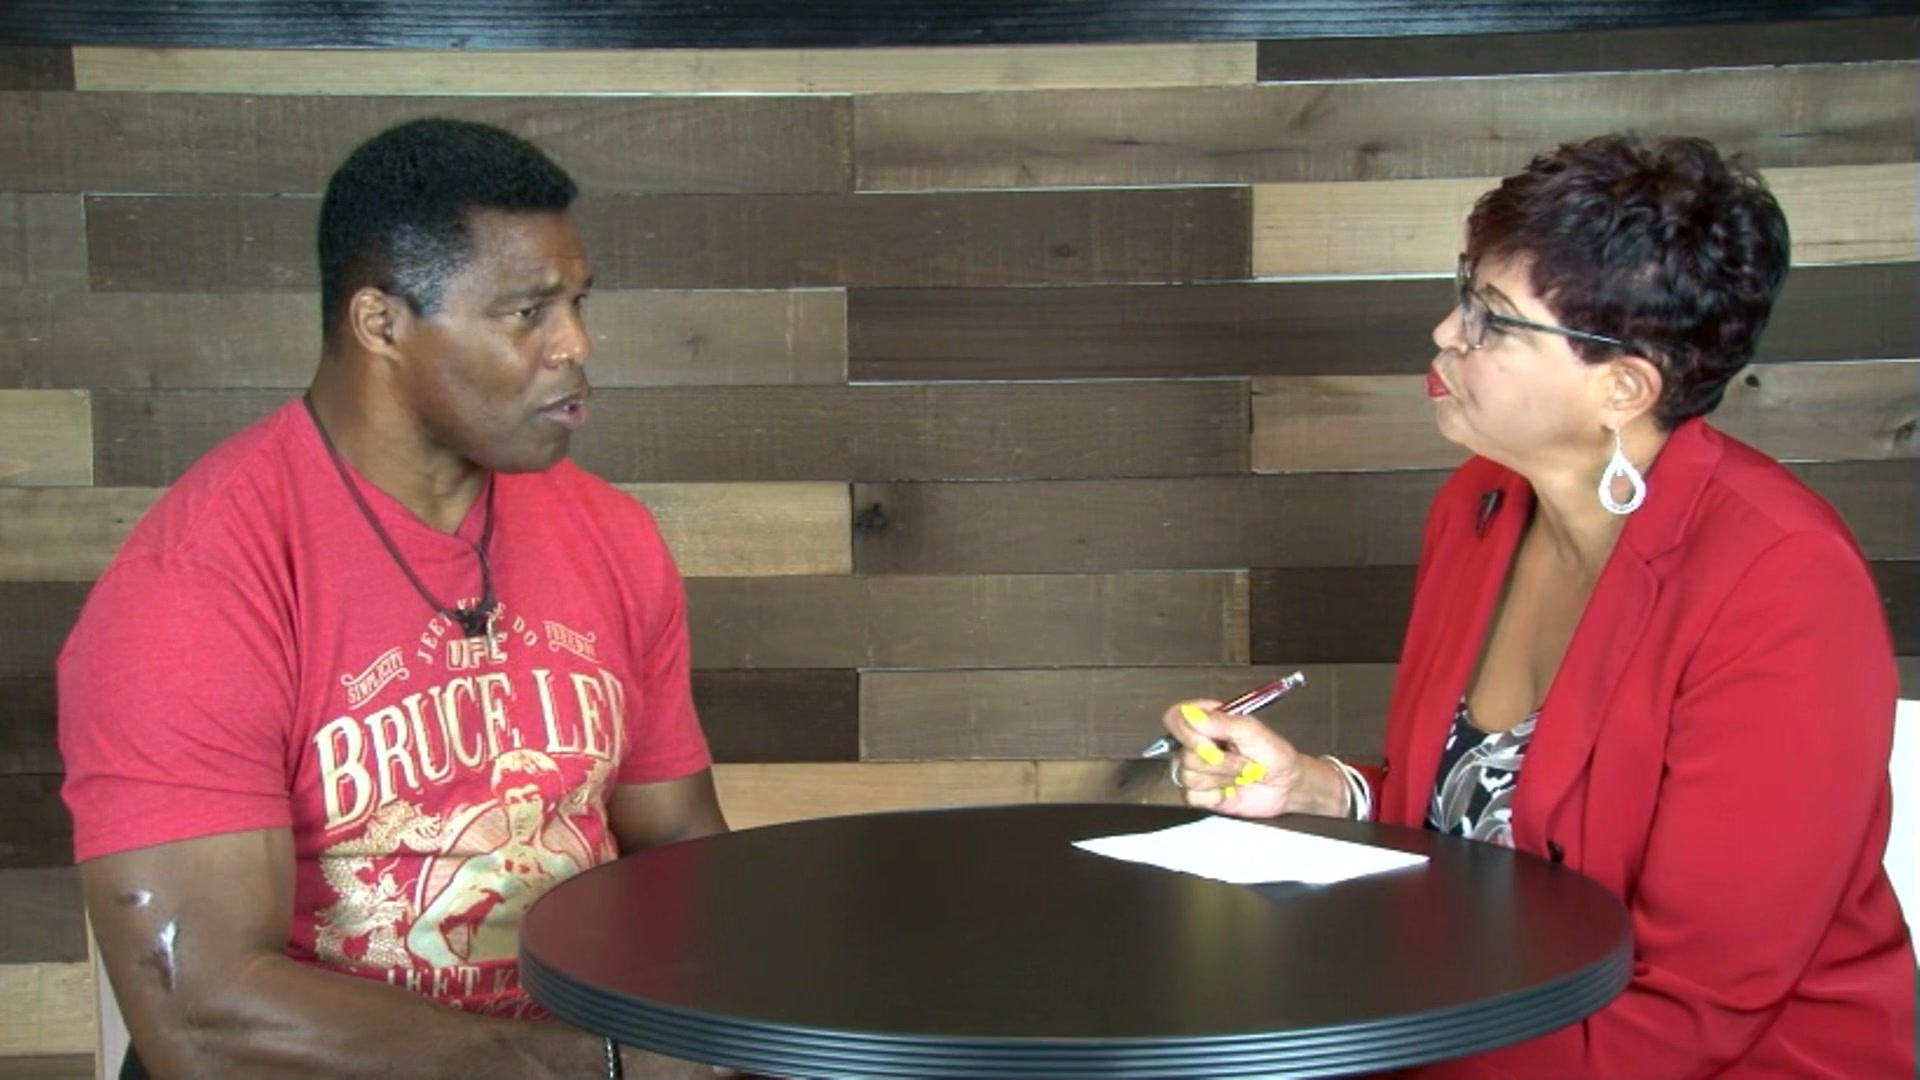 This is the full interview of Herschel Walker on resiliency and mental illness.